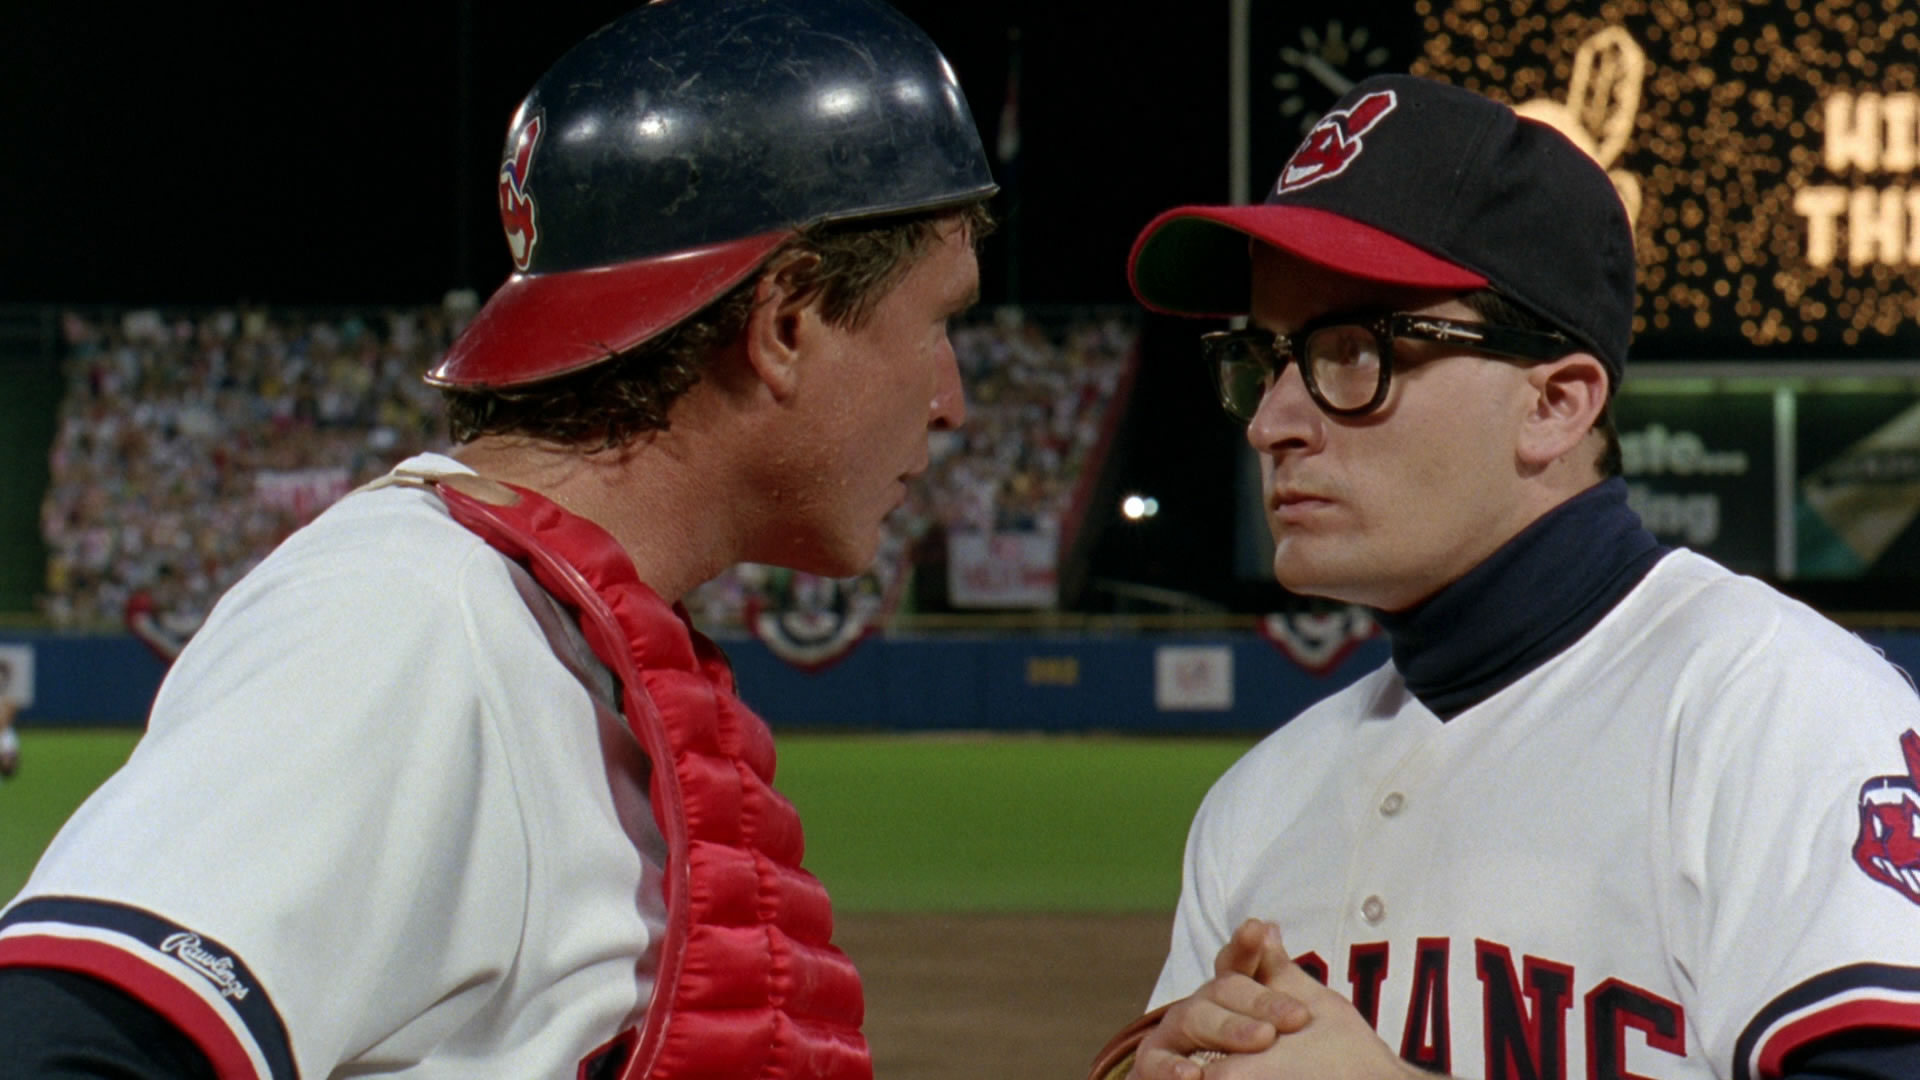 'Major League': 30 things we still love about the classic baseball movie